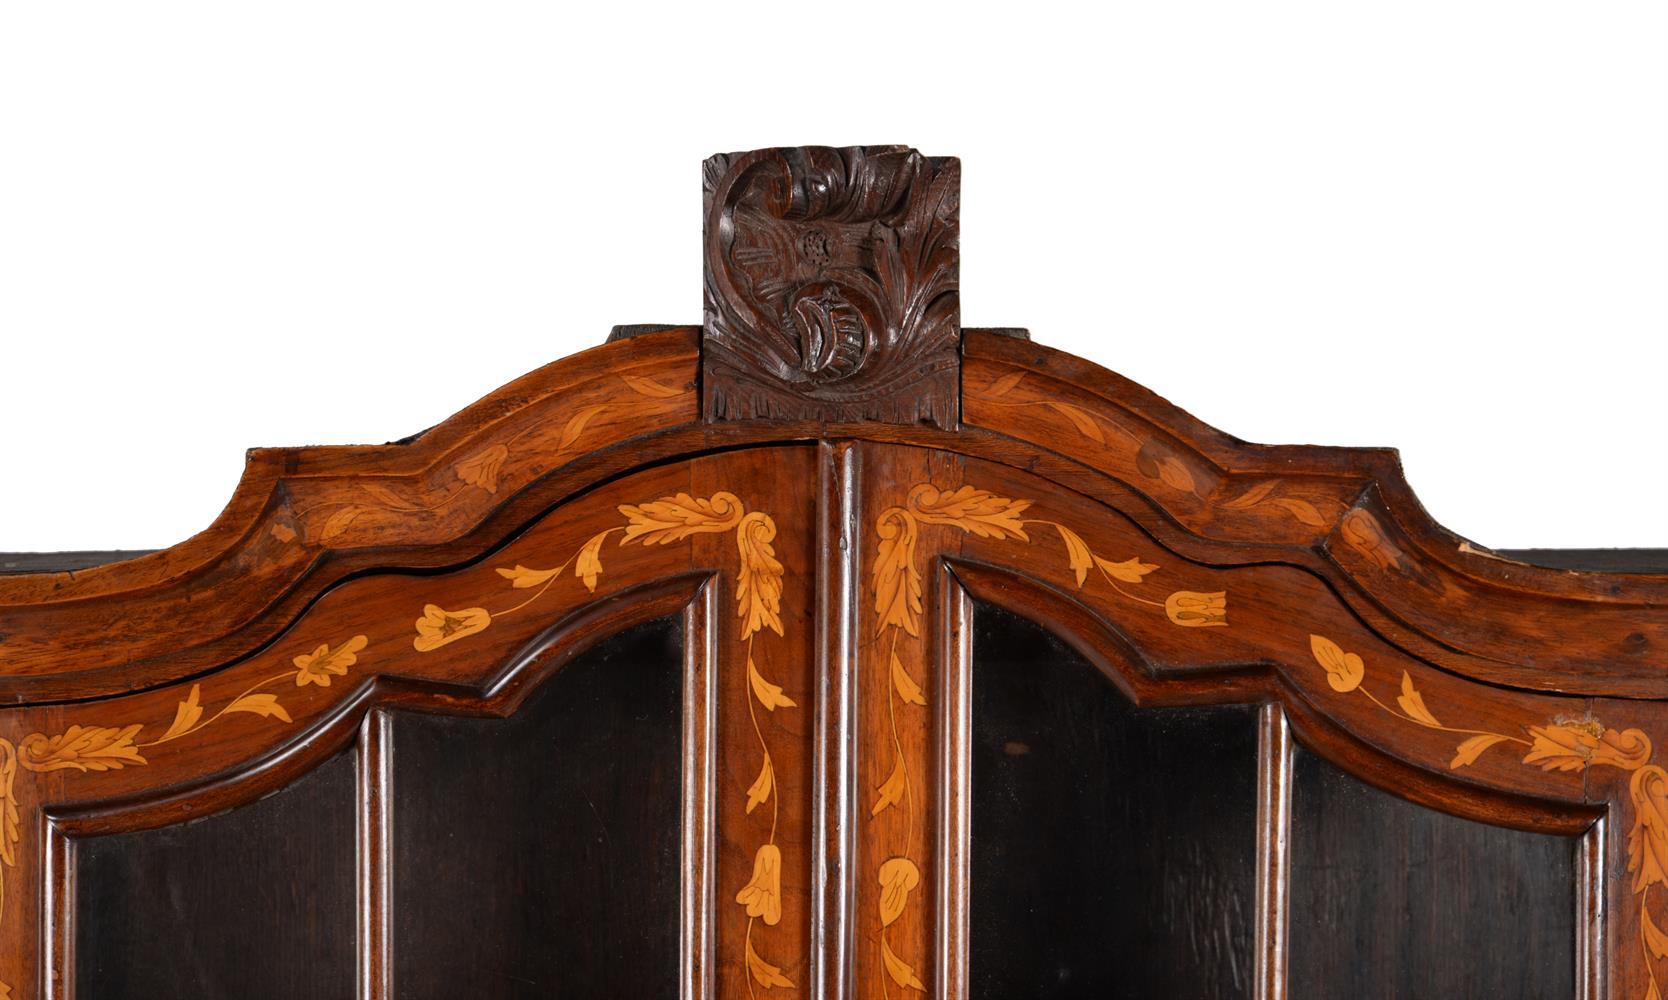 A DUTCH WALNUT AND MARQUETRY INLAID CABINET ON CHEST, LATE 18TH CENTURY - Image 2 of 4